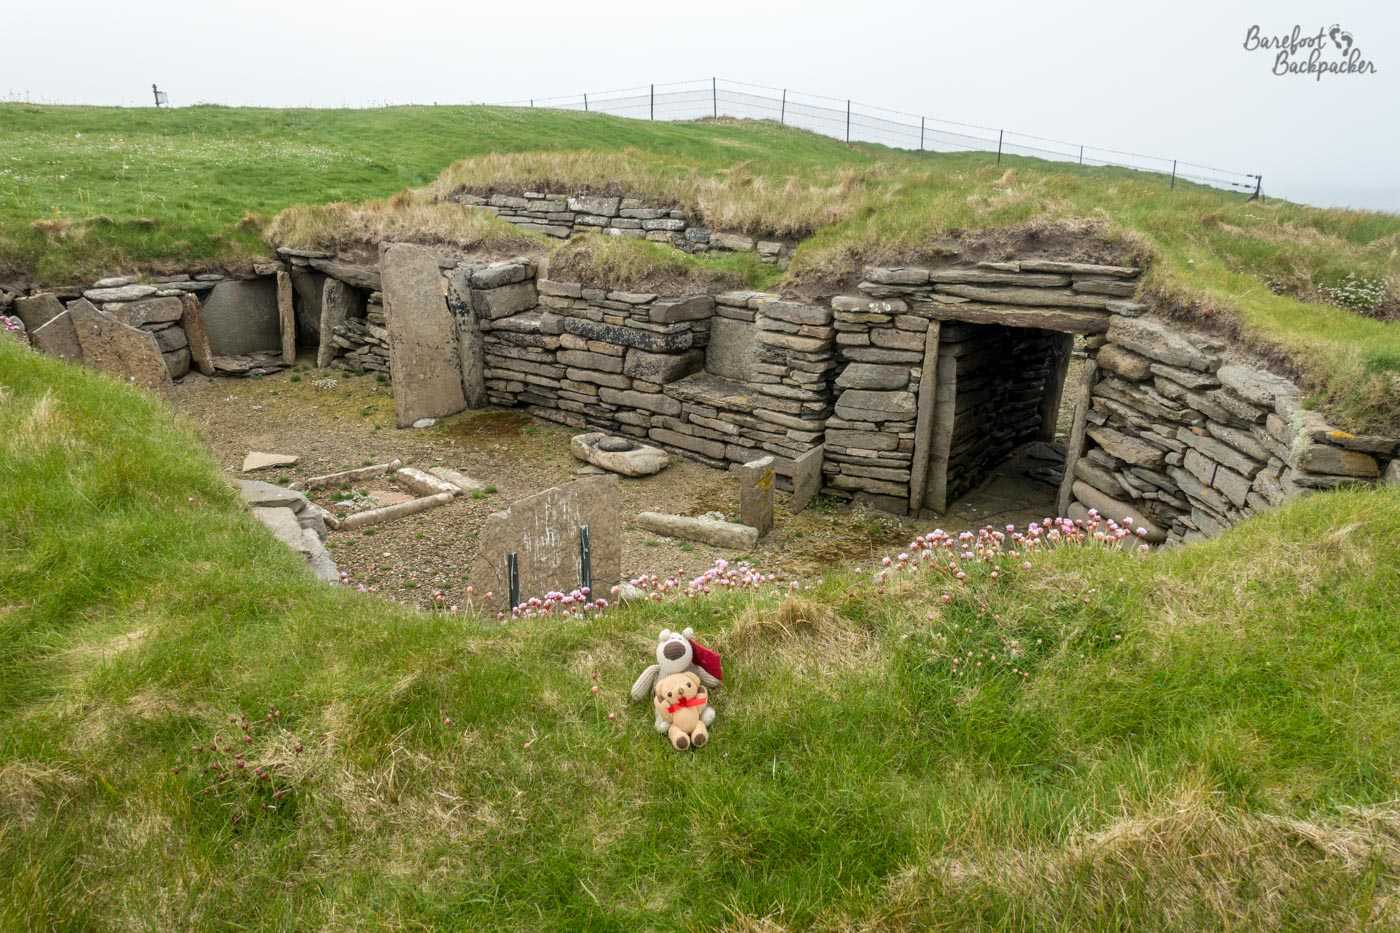 View from the other side of the Knap of Howar. The walls can be seen made up of flat stones laid horizontally. In front of the sunken house are some purple flowers, and in front of that are two small soft toys because Baby Ian and Dave wanted a selfie.